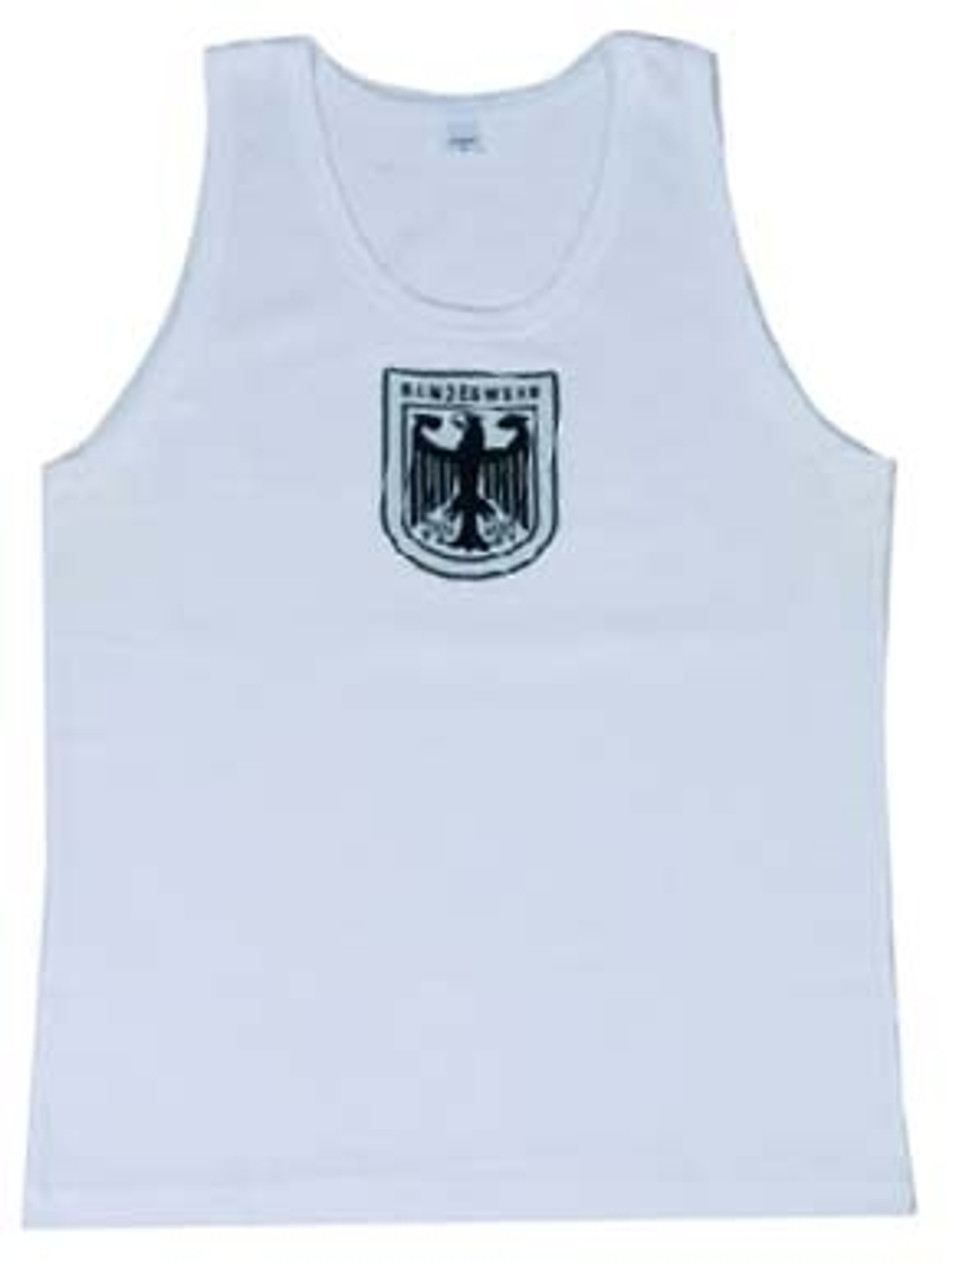 Bw White Tank Top from Hessen Surplus